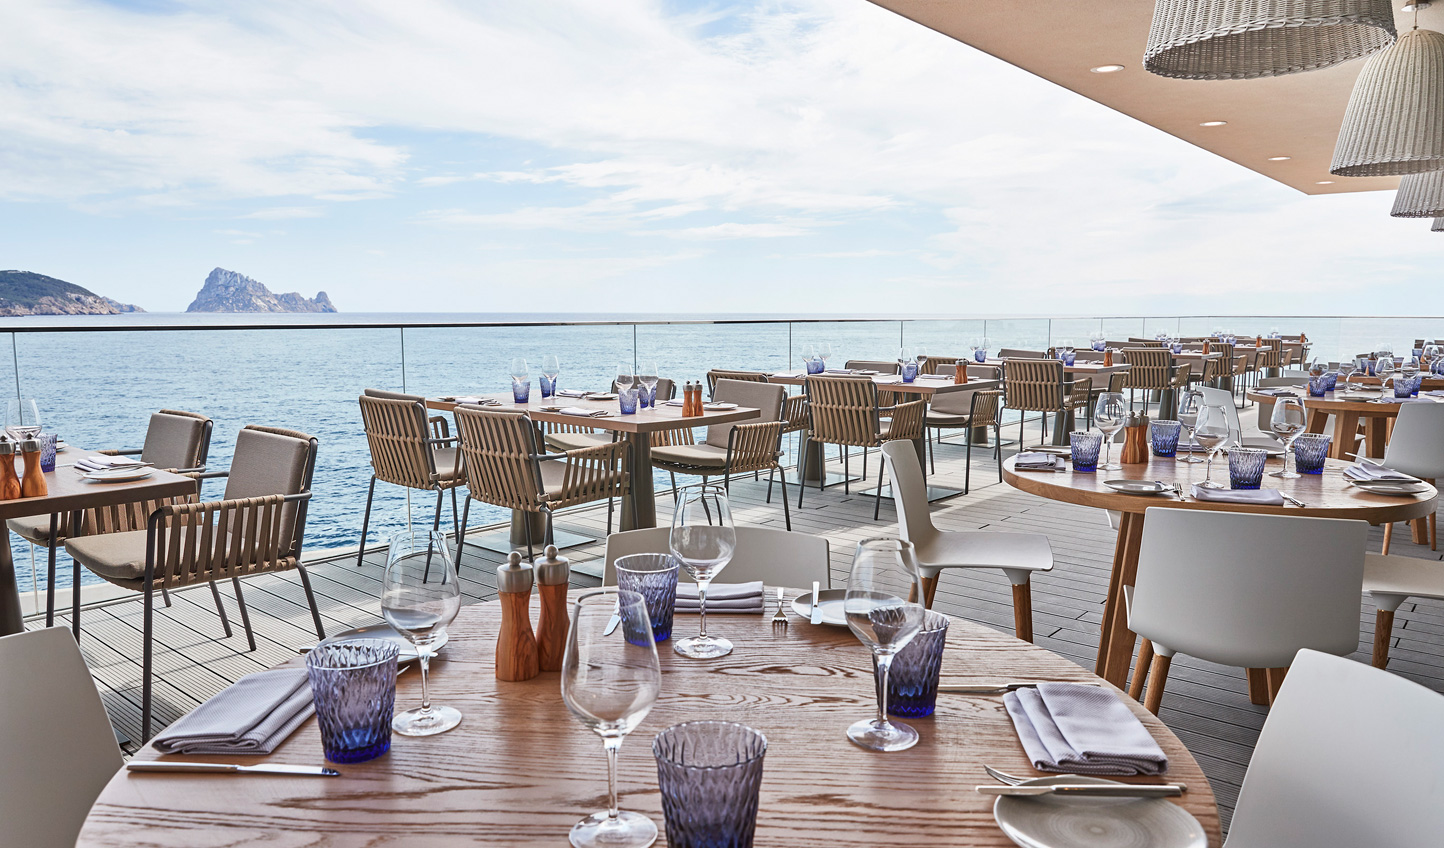 Head to The View for innovative cuisine with an irresistible backdrop